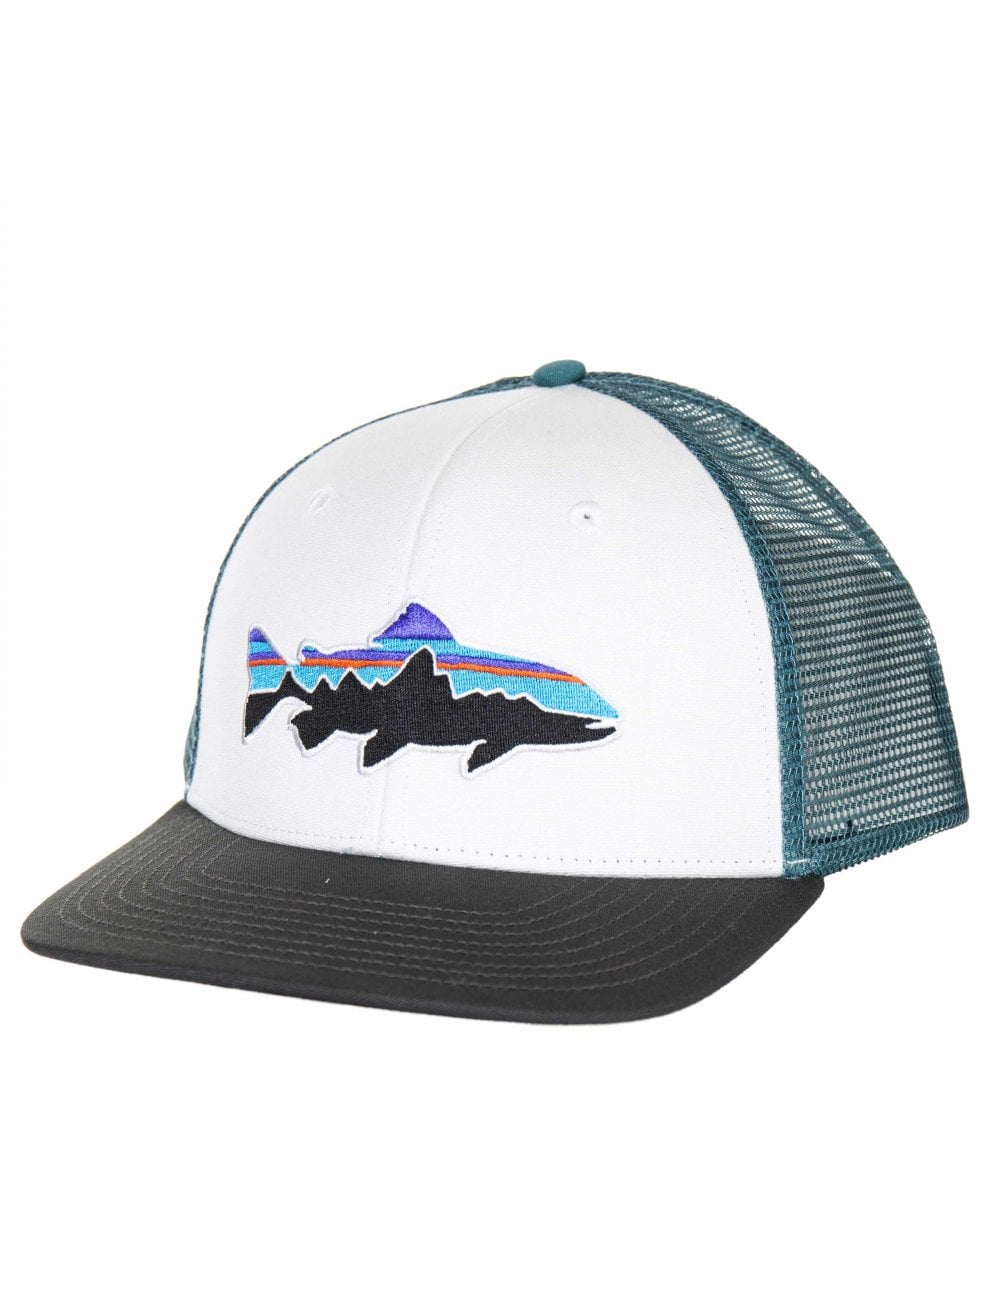 Patagonia Fitz Roy Trout Trucker Hat - White w Forge Grey ... 7388a9ea4ca